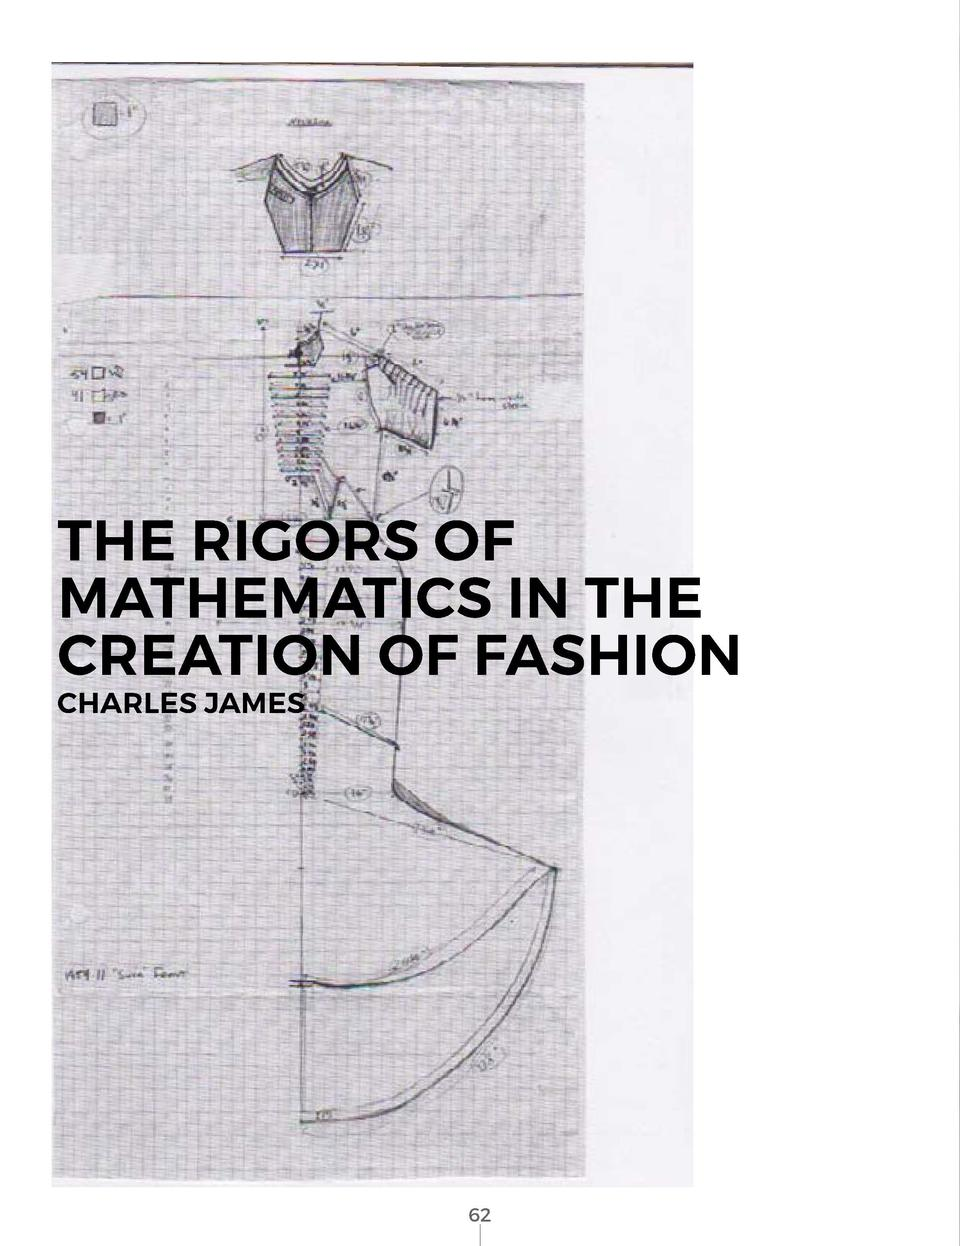 THE RIGORS OF MATHEMATICS IN THE CREATION OF FASHION  CHARLES JAMES       62